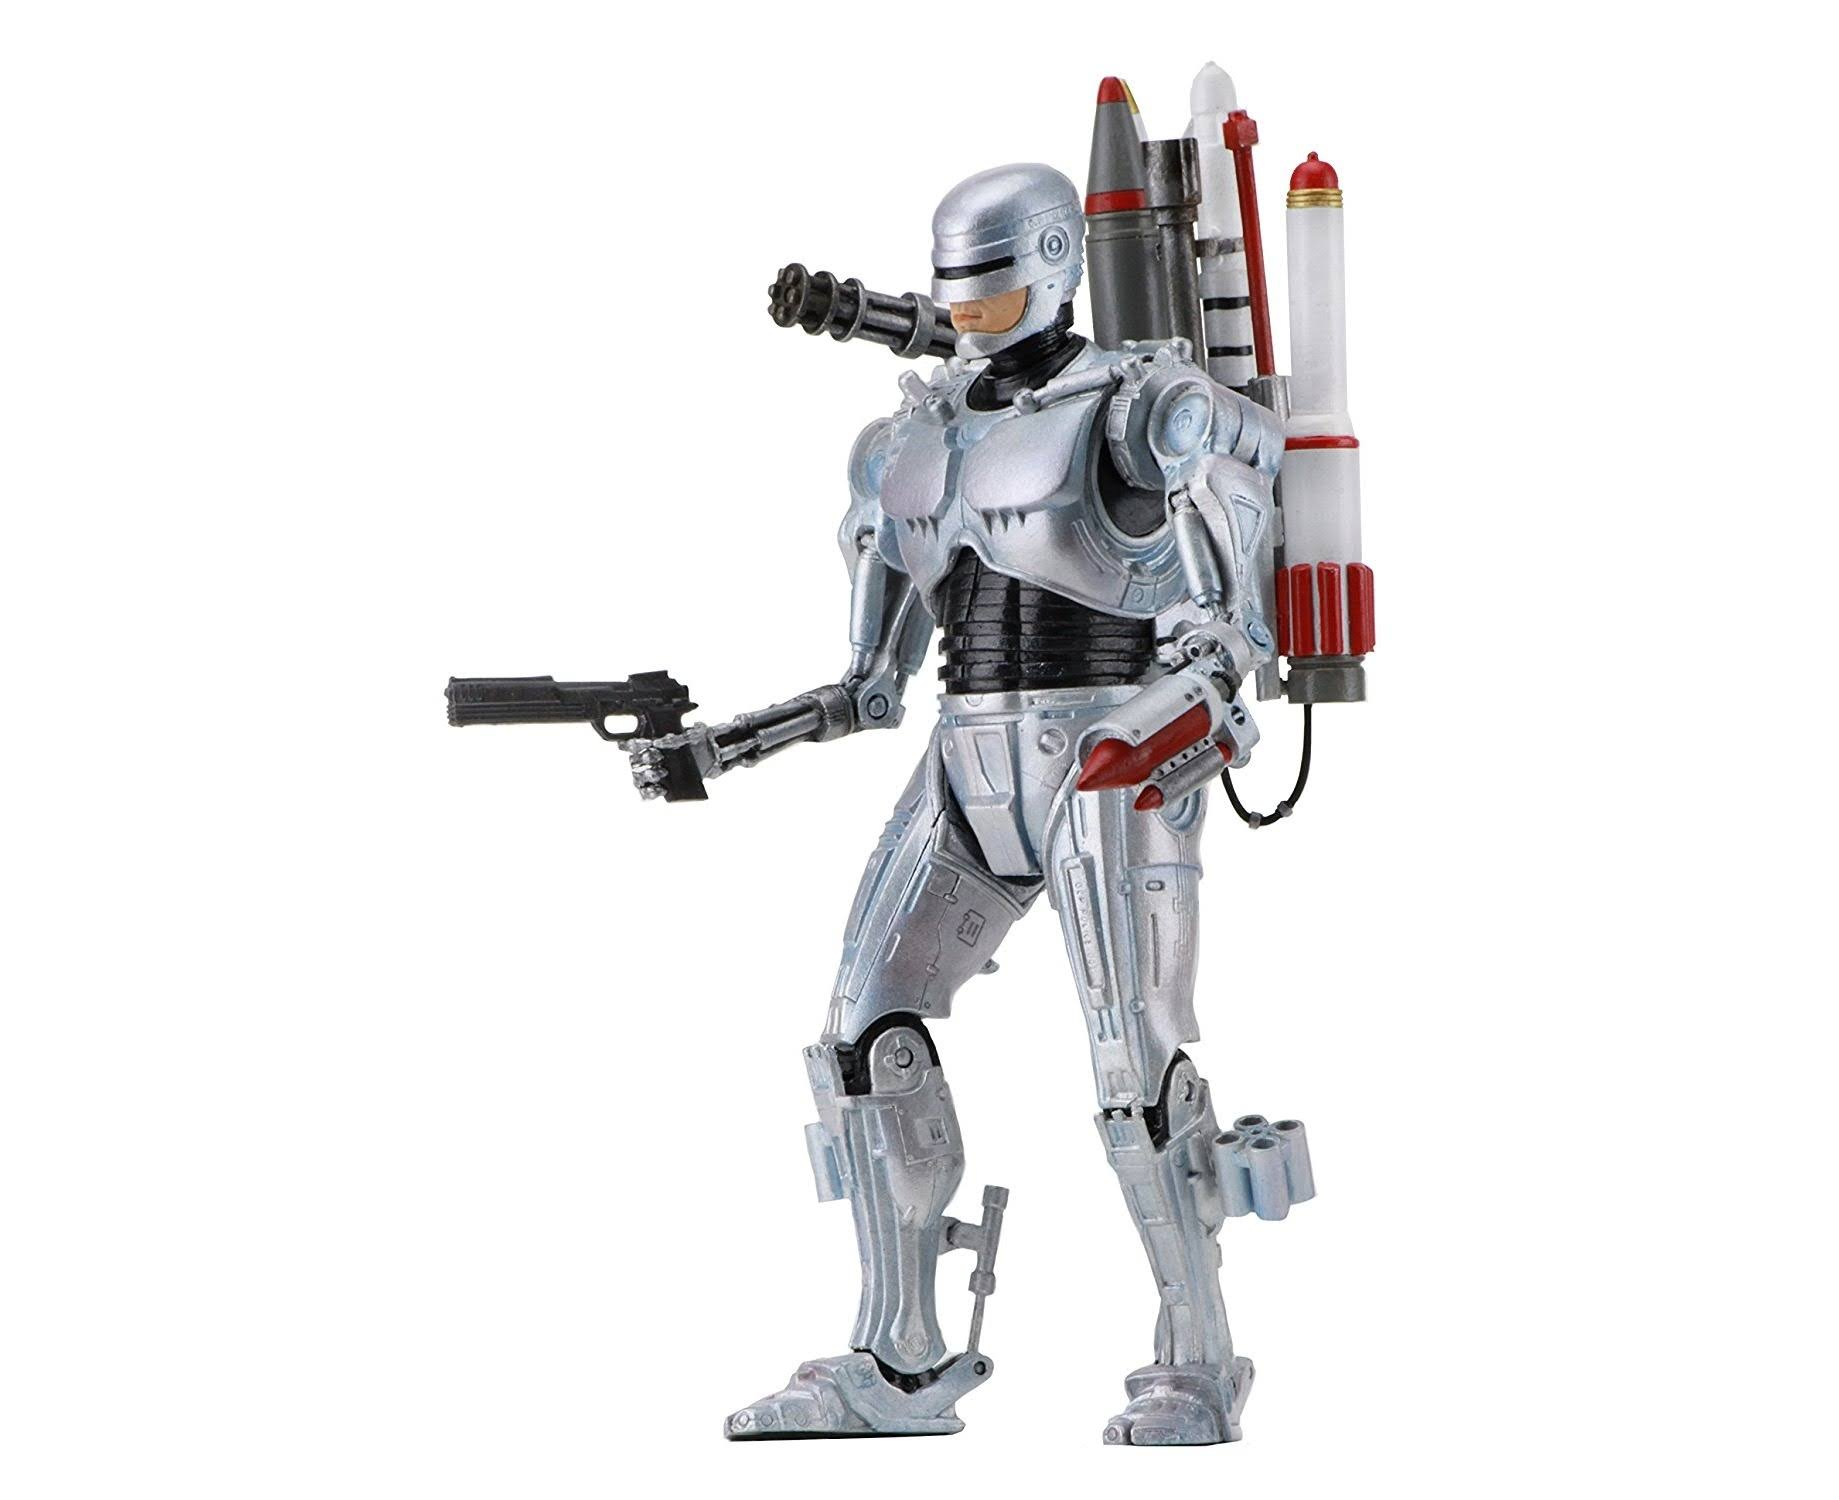 NECA Ultimate Future Robocop Vs Terminator Scale Action Figure - 7""